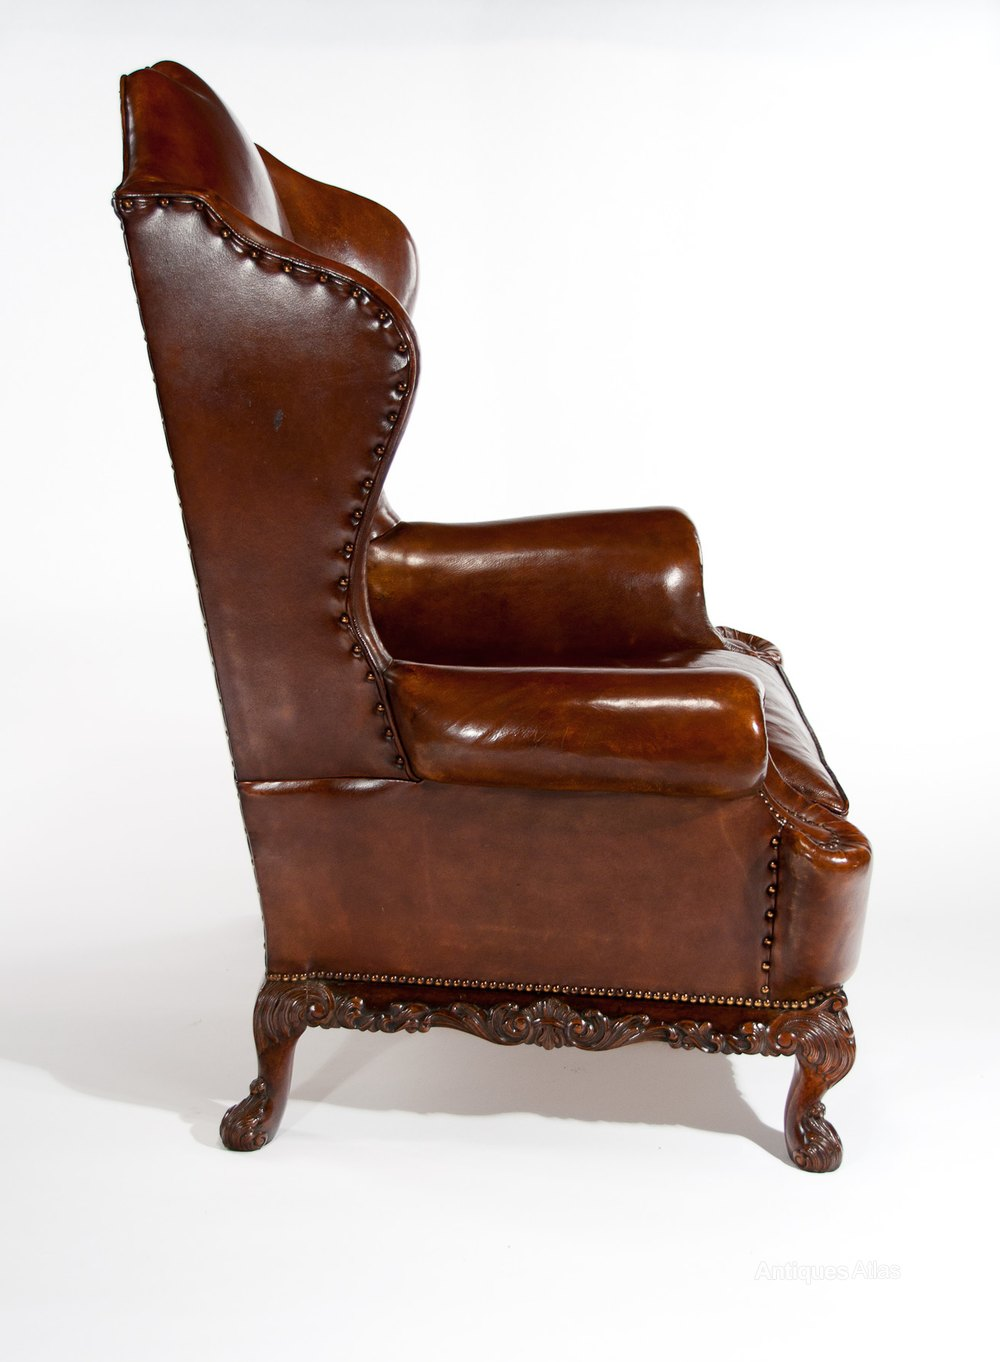 A Quality Walnut Leather Upholstered Wing Chair Antiques